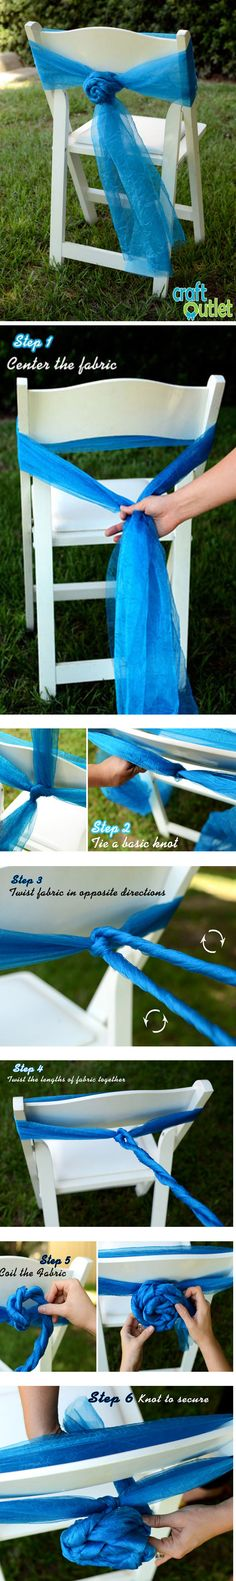 Tutorial How to make a Sheer Chair Bow Rosettes Wedding Chair Decorations, Wedding Chairs, Decoration Table, Chair Bows, Chair Sashes, Craft Outlet, Chair Covers, Event Design, Design Design